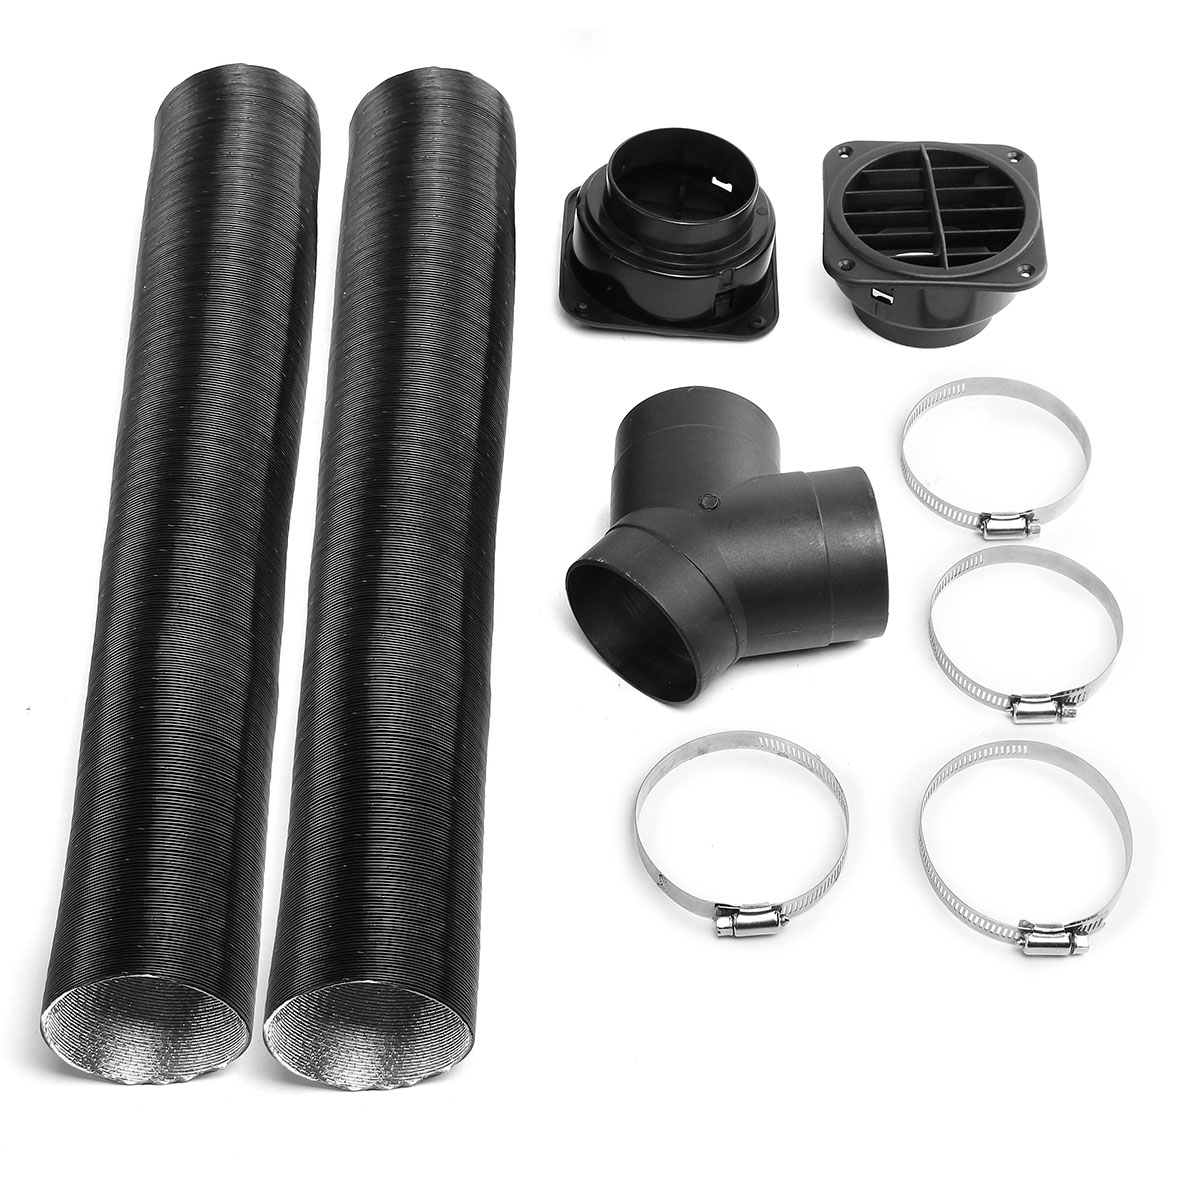 60mm T-shaped Heater Tee Ducting Branch for Eberspacher//Webasto Airtronic